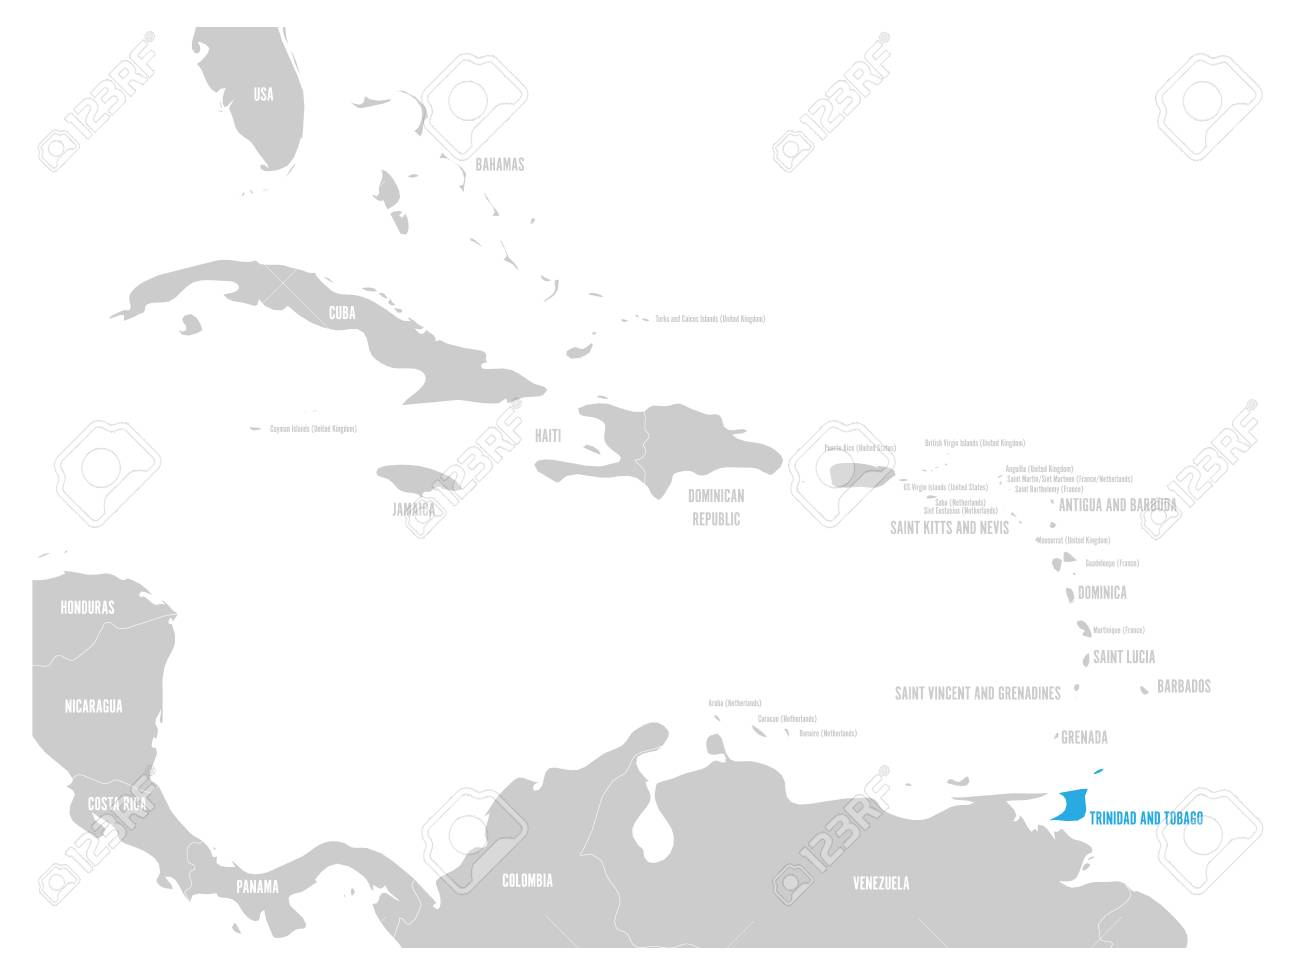 Bahamas blue marked in the map of Caribbean. Vector illustration. on florida map, caribbean island, european map, carribean map, mexico map, trinidad map, guyana map, haiti map, mediterranean map, united states map, asia map, african map, jamaica map, dominican republic map, caribbean hotel, bvi map, caribean map, lesser antilles map, caribbean princess, brazil map, southeast usa map, europe map, africa map,